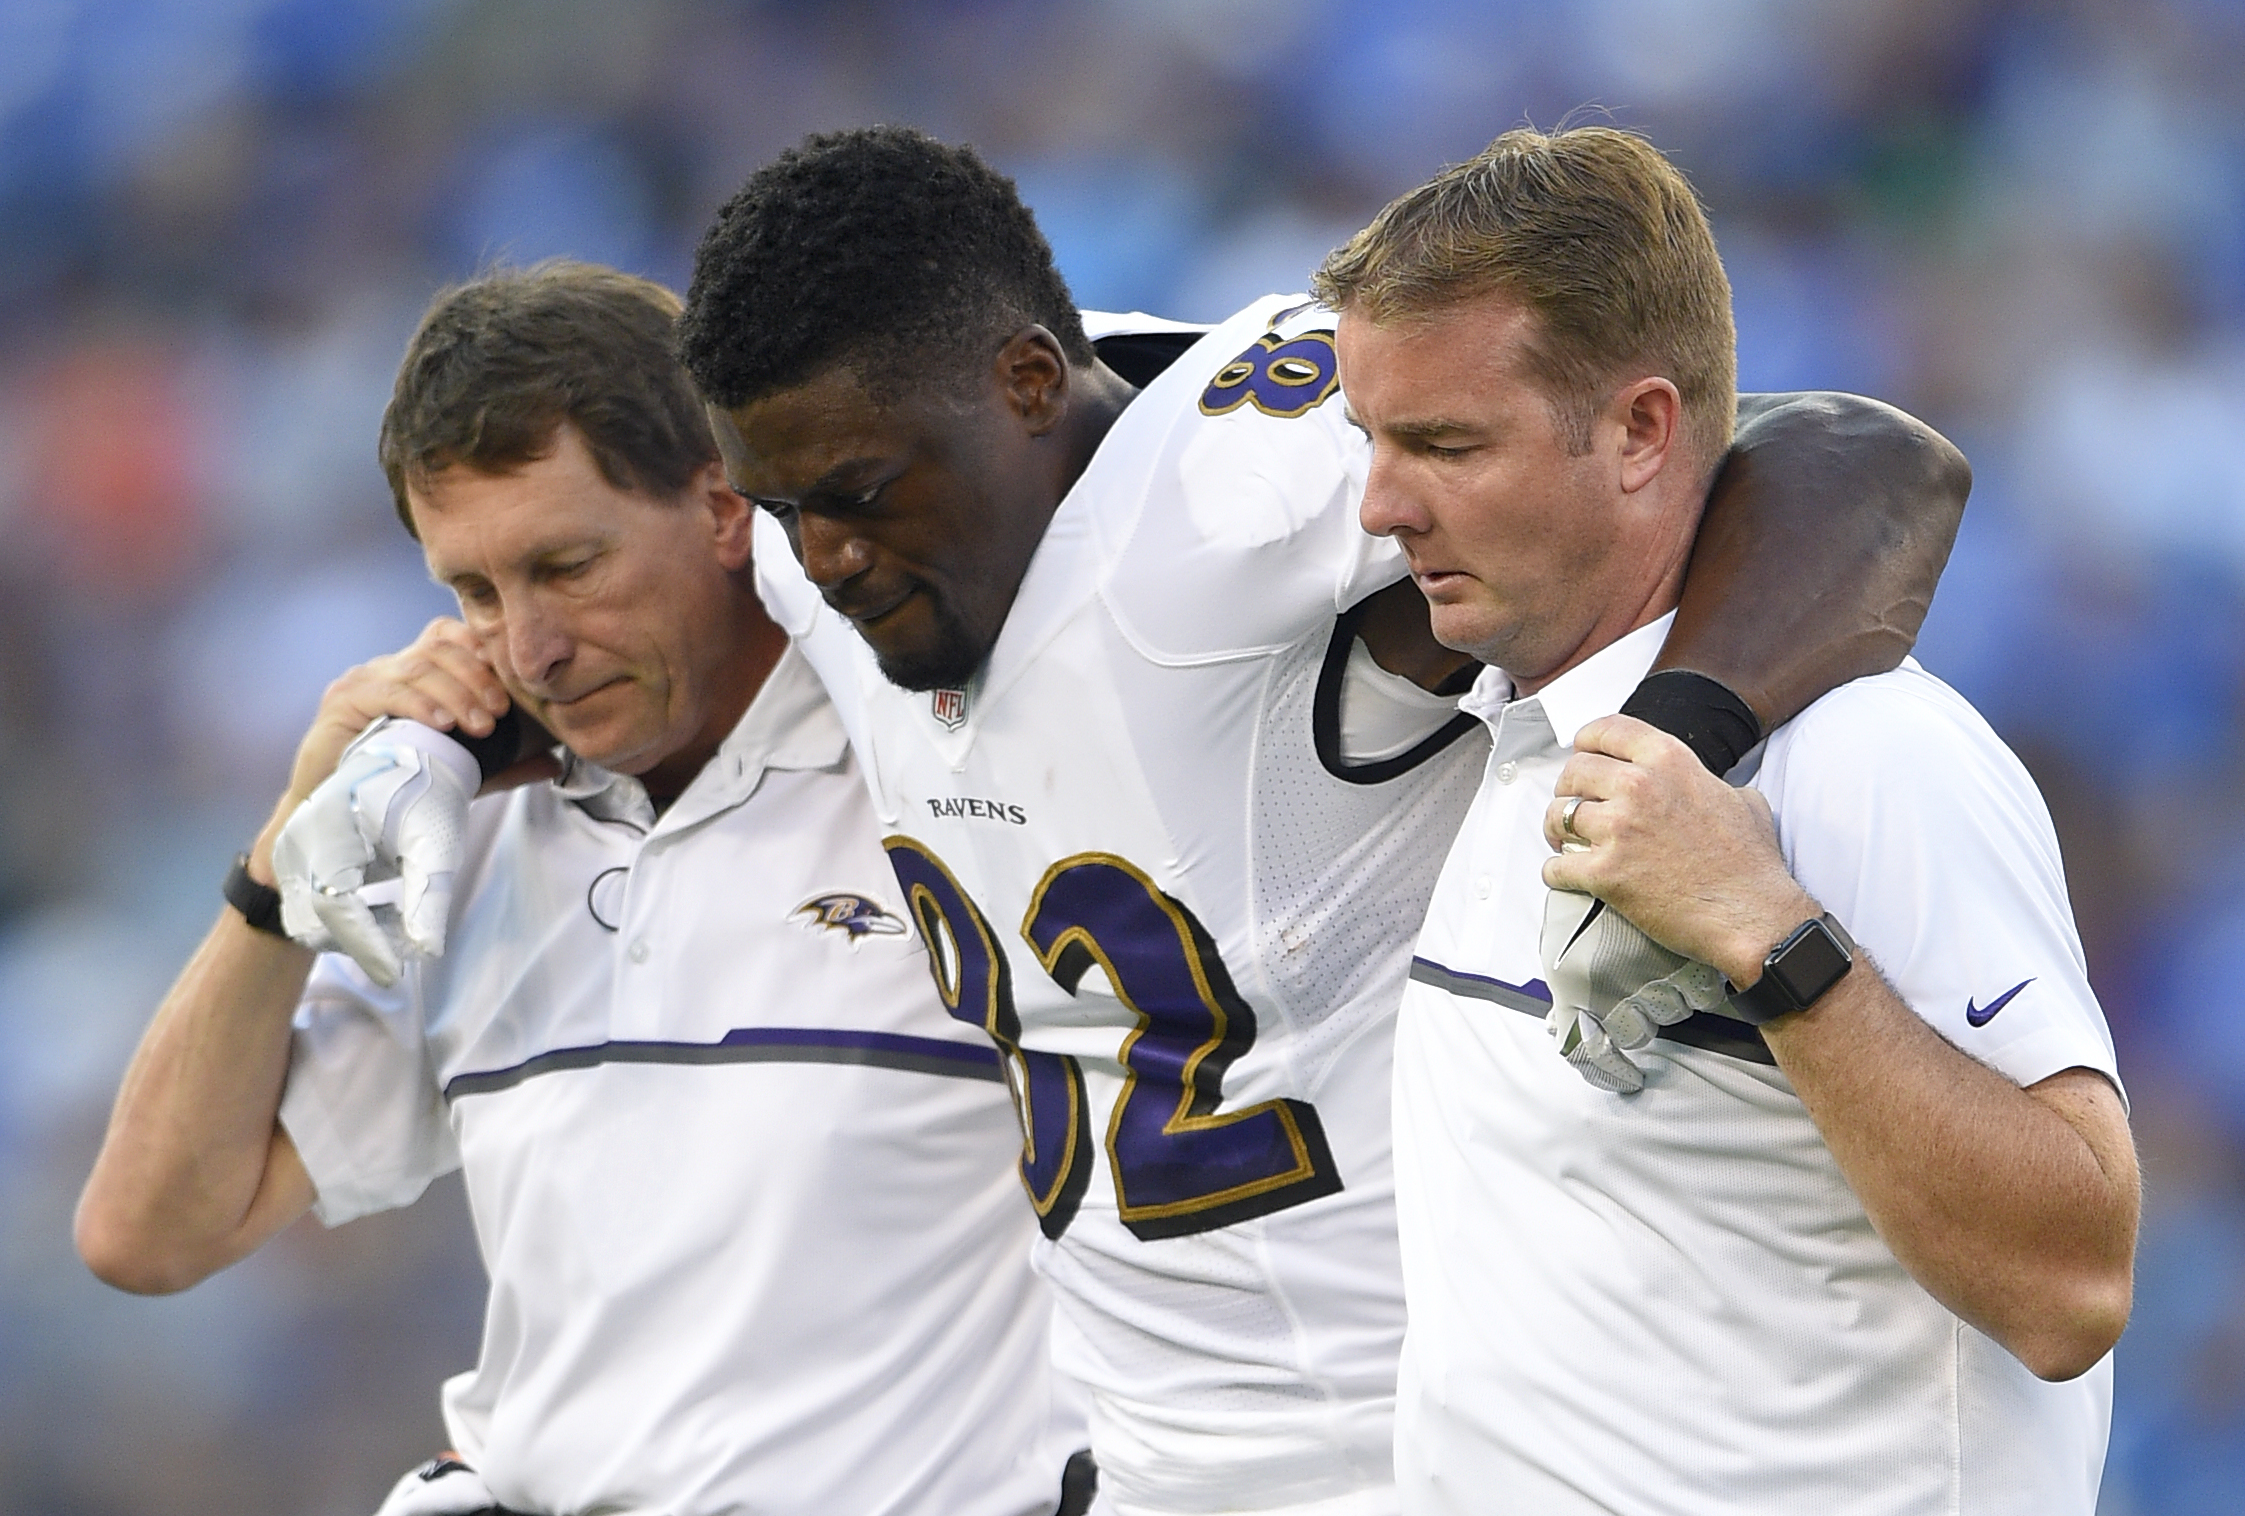 Baltimore Ravens tight end Benjamin Watson is assisted off the field after injuring himself in the first half of a preseason NFL football game against the Detroit Lions, Saturday, Aug. 27, 2016, in Baltimore. (AP Photo/Nick Wass)